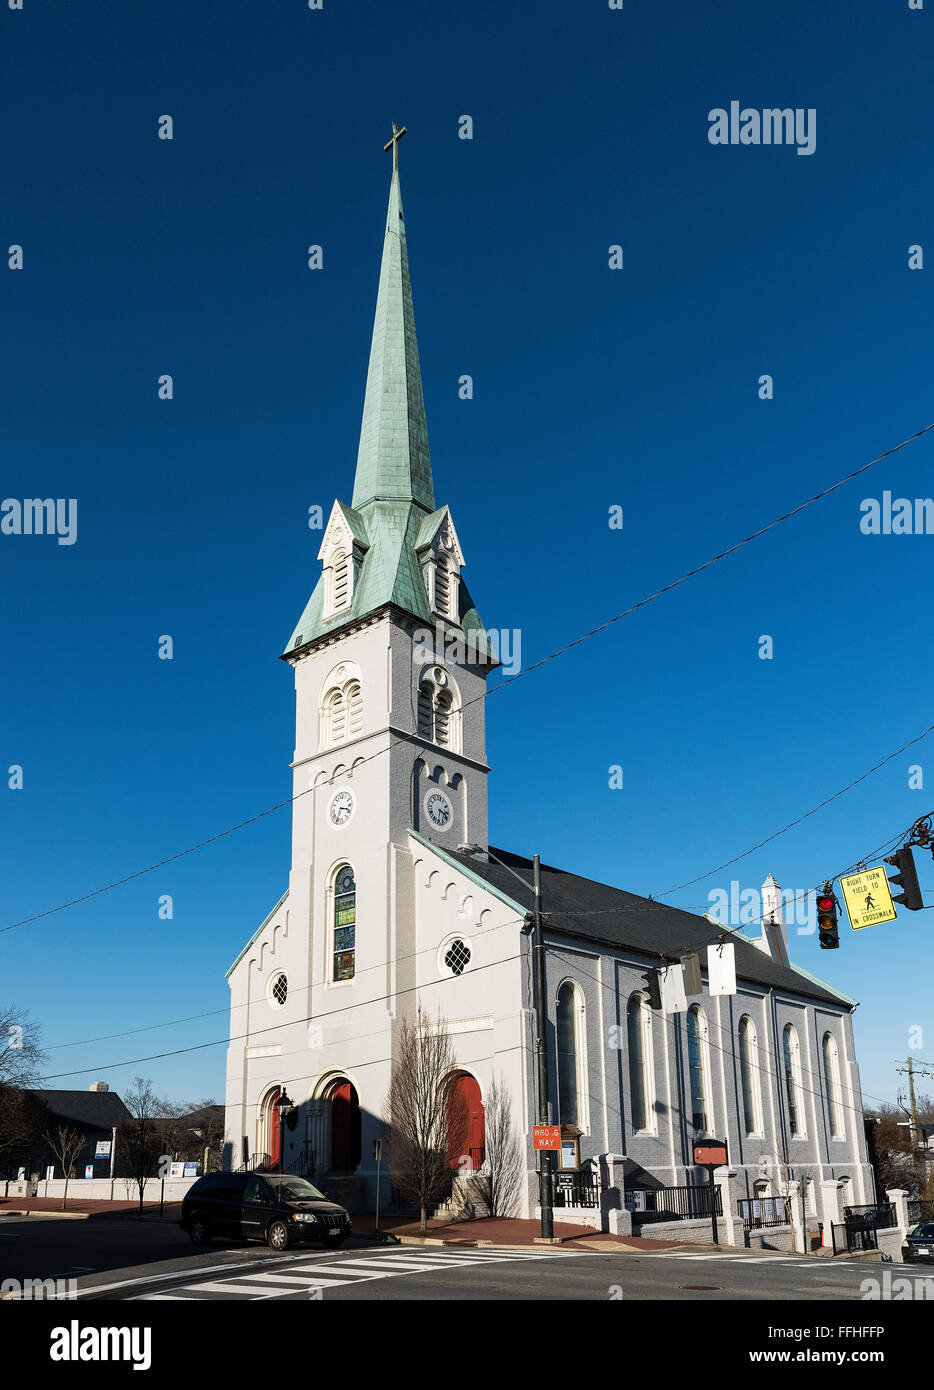 St George's Episcopal Church, Fredericksburg, Virginia, USA - Stock Image